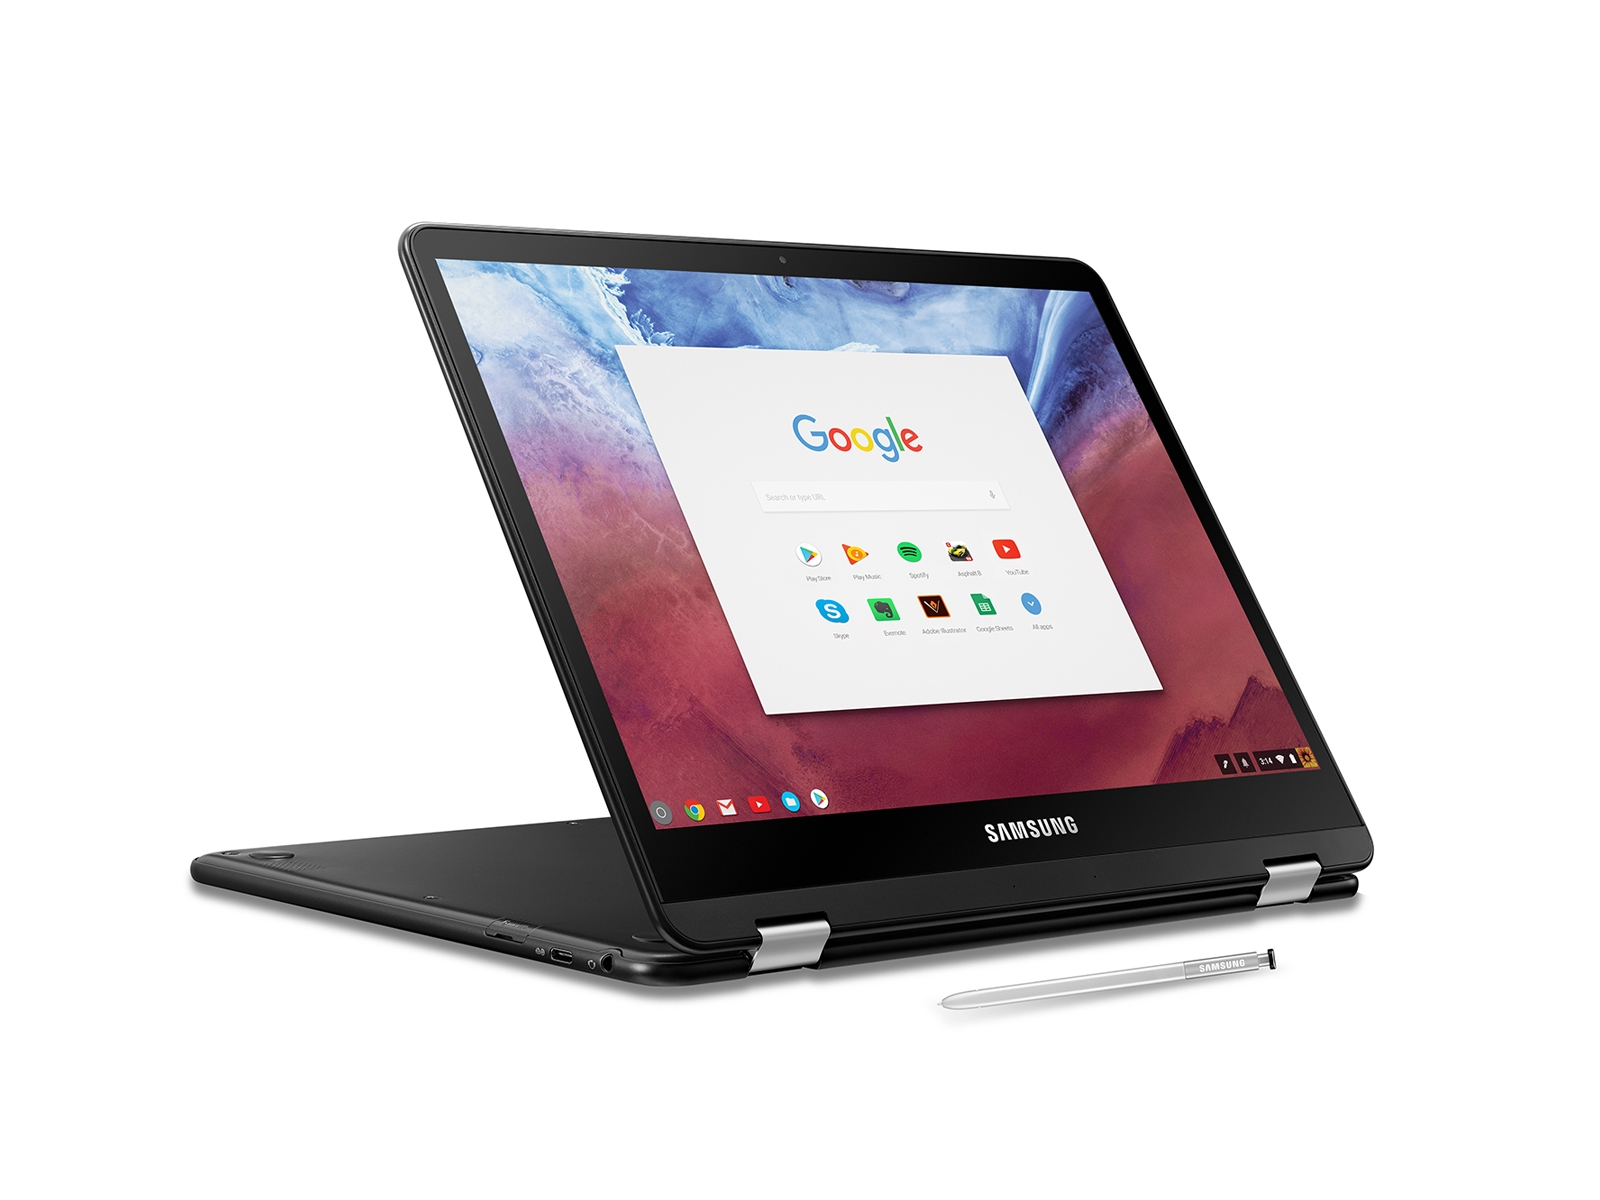 Samsung Chromebook Pro Xe510c24 K01us Us U S Soldiers Develop High Tech Gadget For Better Night Vision